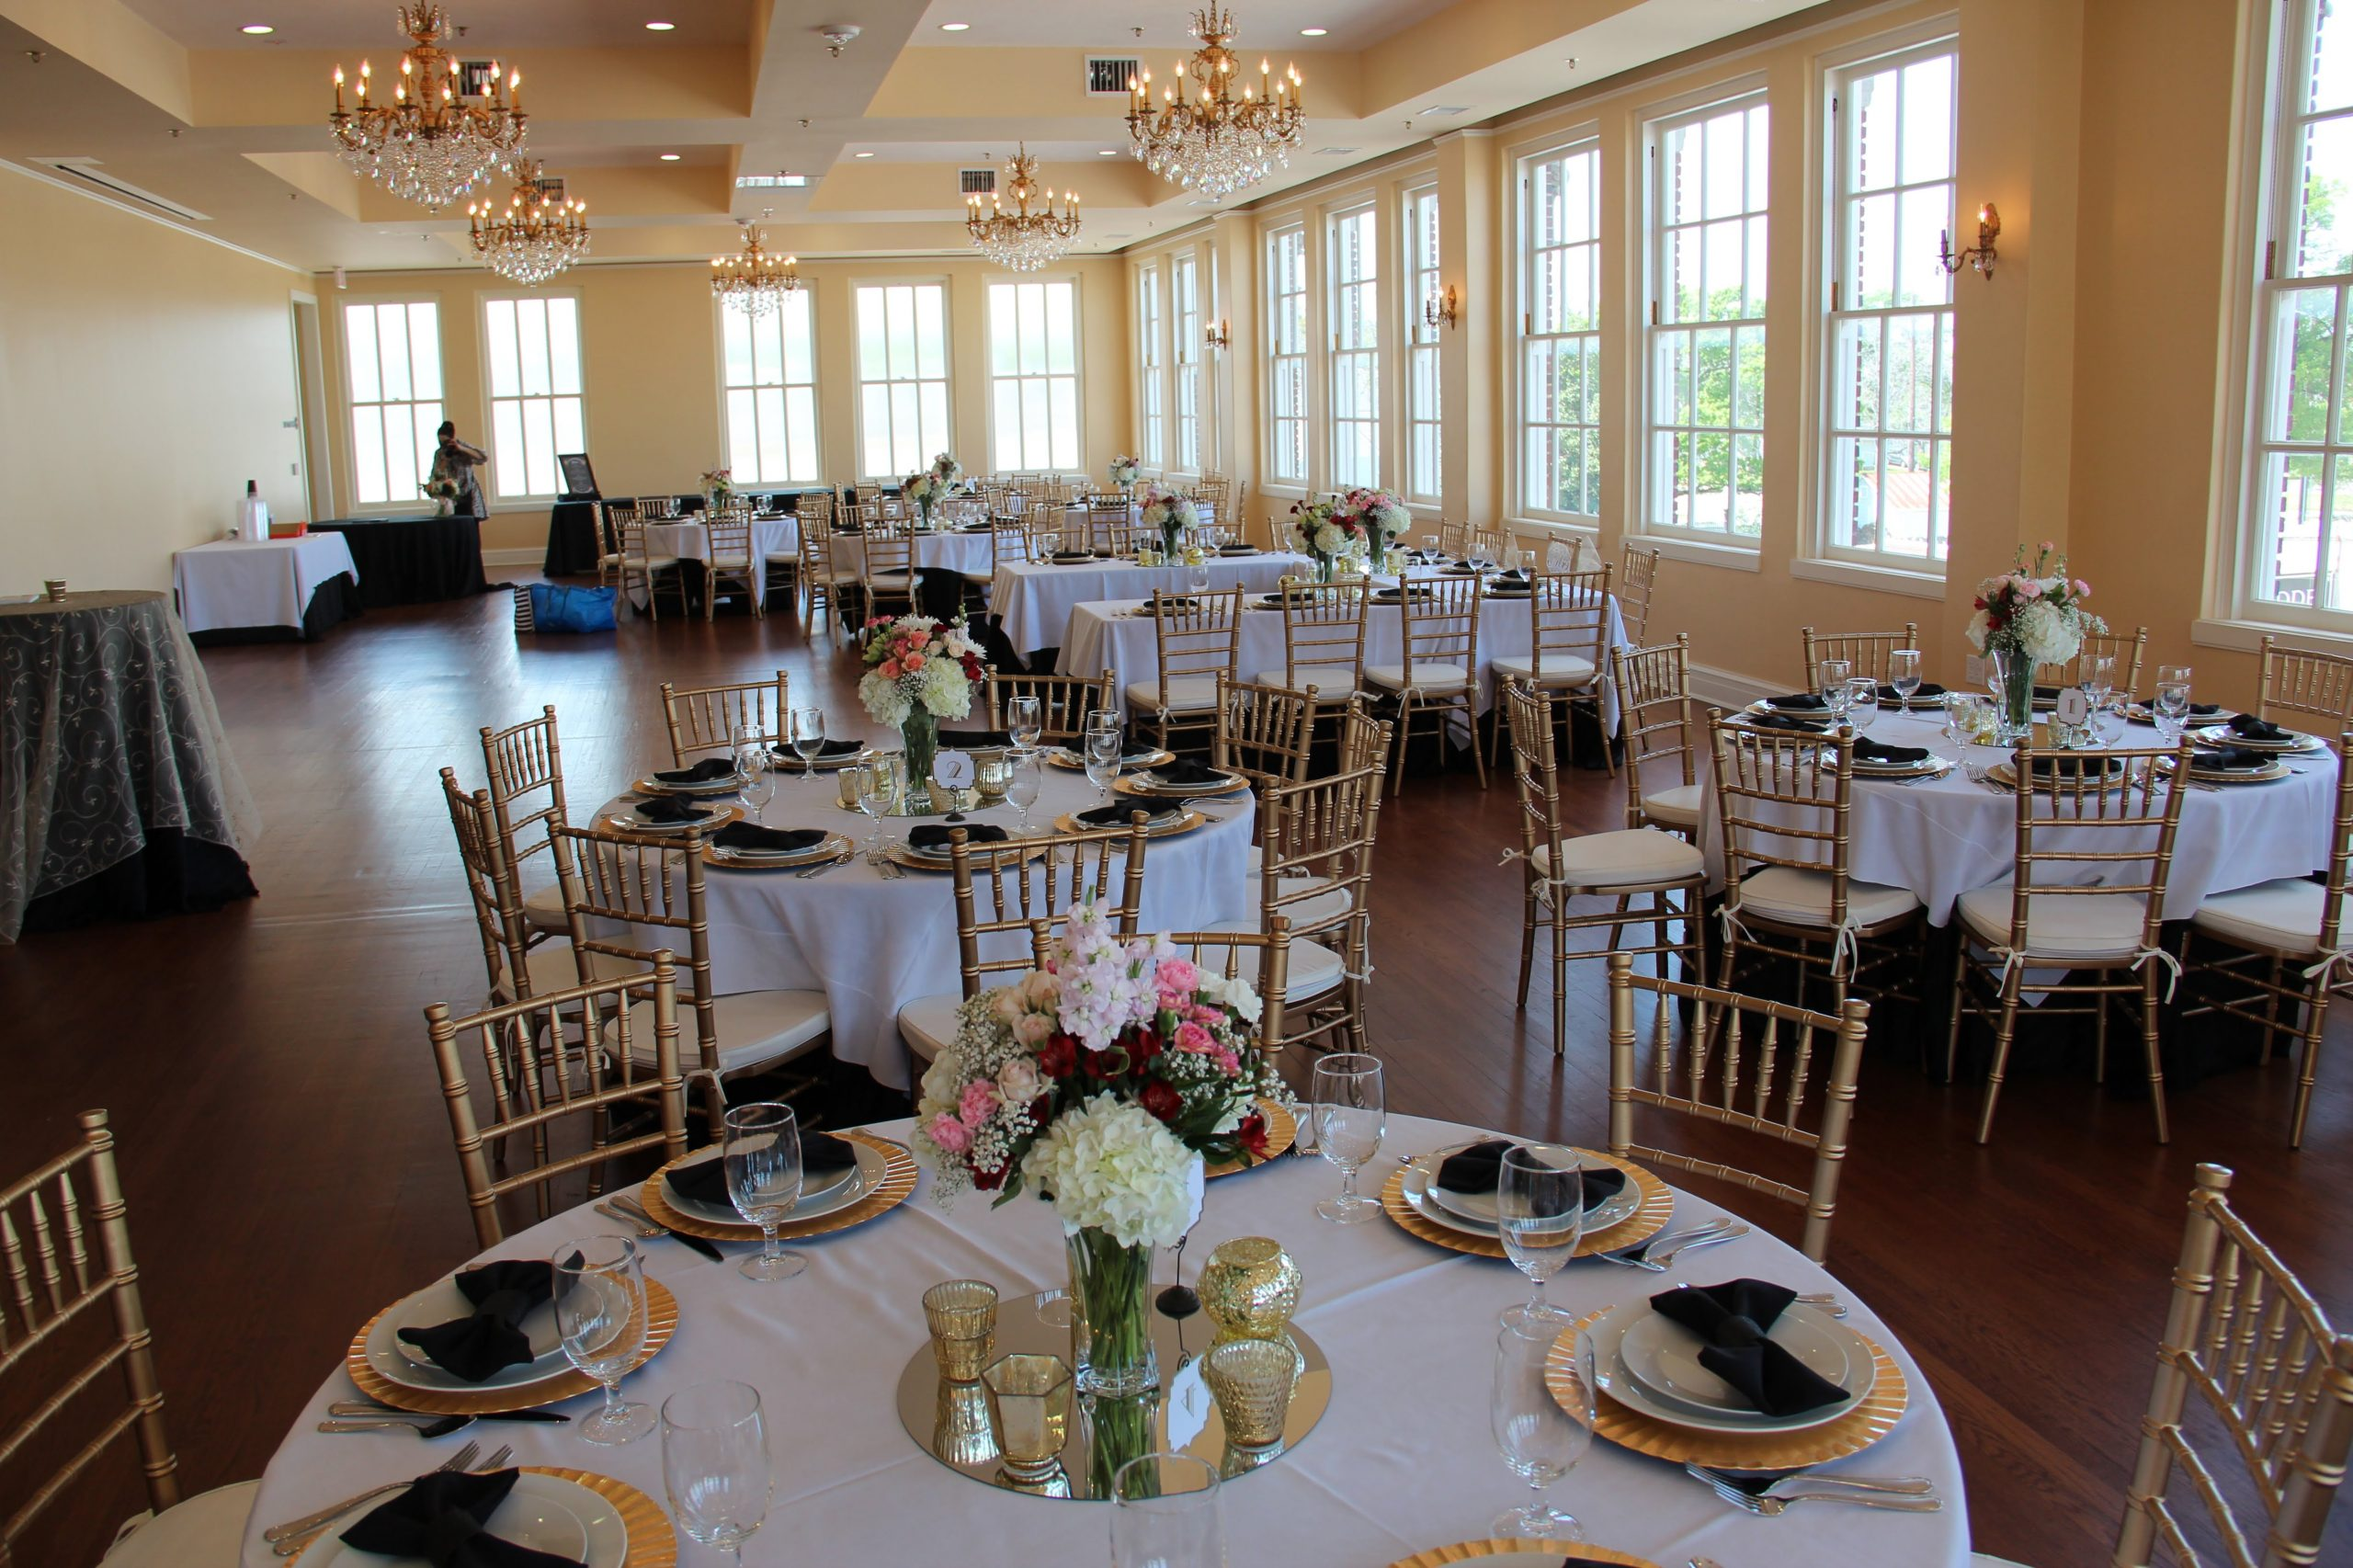 White linen tables decorated with gold charges, white china and black linen napkins. Centerpieces consist of glass mirror base, various candle holders, and a floral arrangement of mixed flowers.